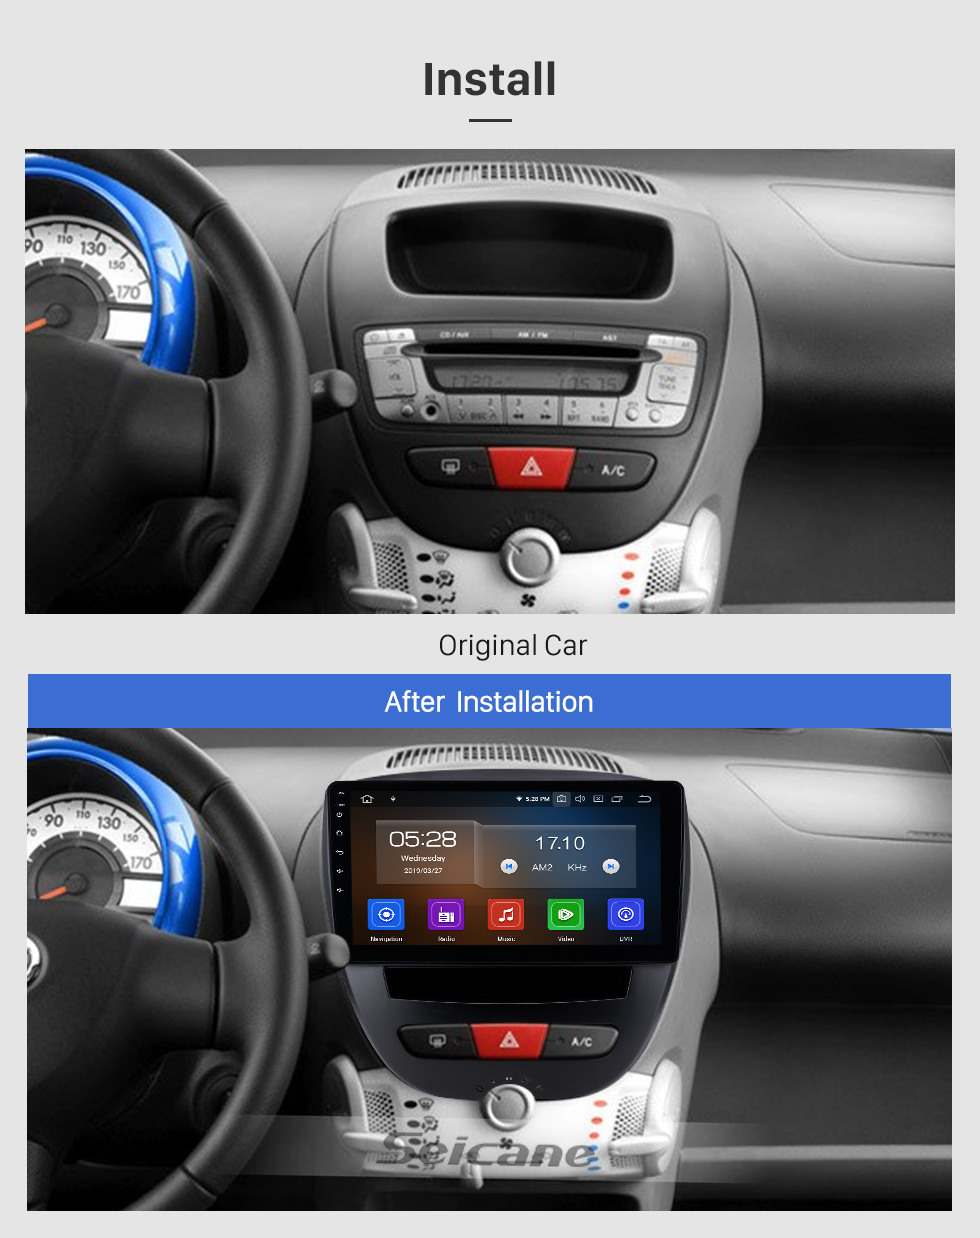 Seicane 10,1 Zoll Android 9.0 GPS-Navigationsradio für Citroen Bluetooth Wifi HD-Touchscreen-Musik-Carplay-Unterstützung Backup-Kamera 1080P-Video 2005-2014